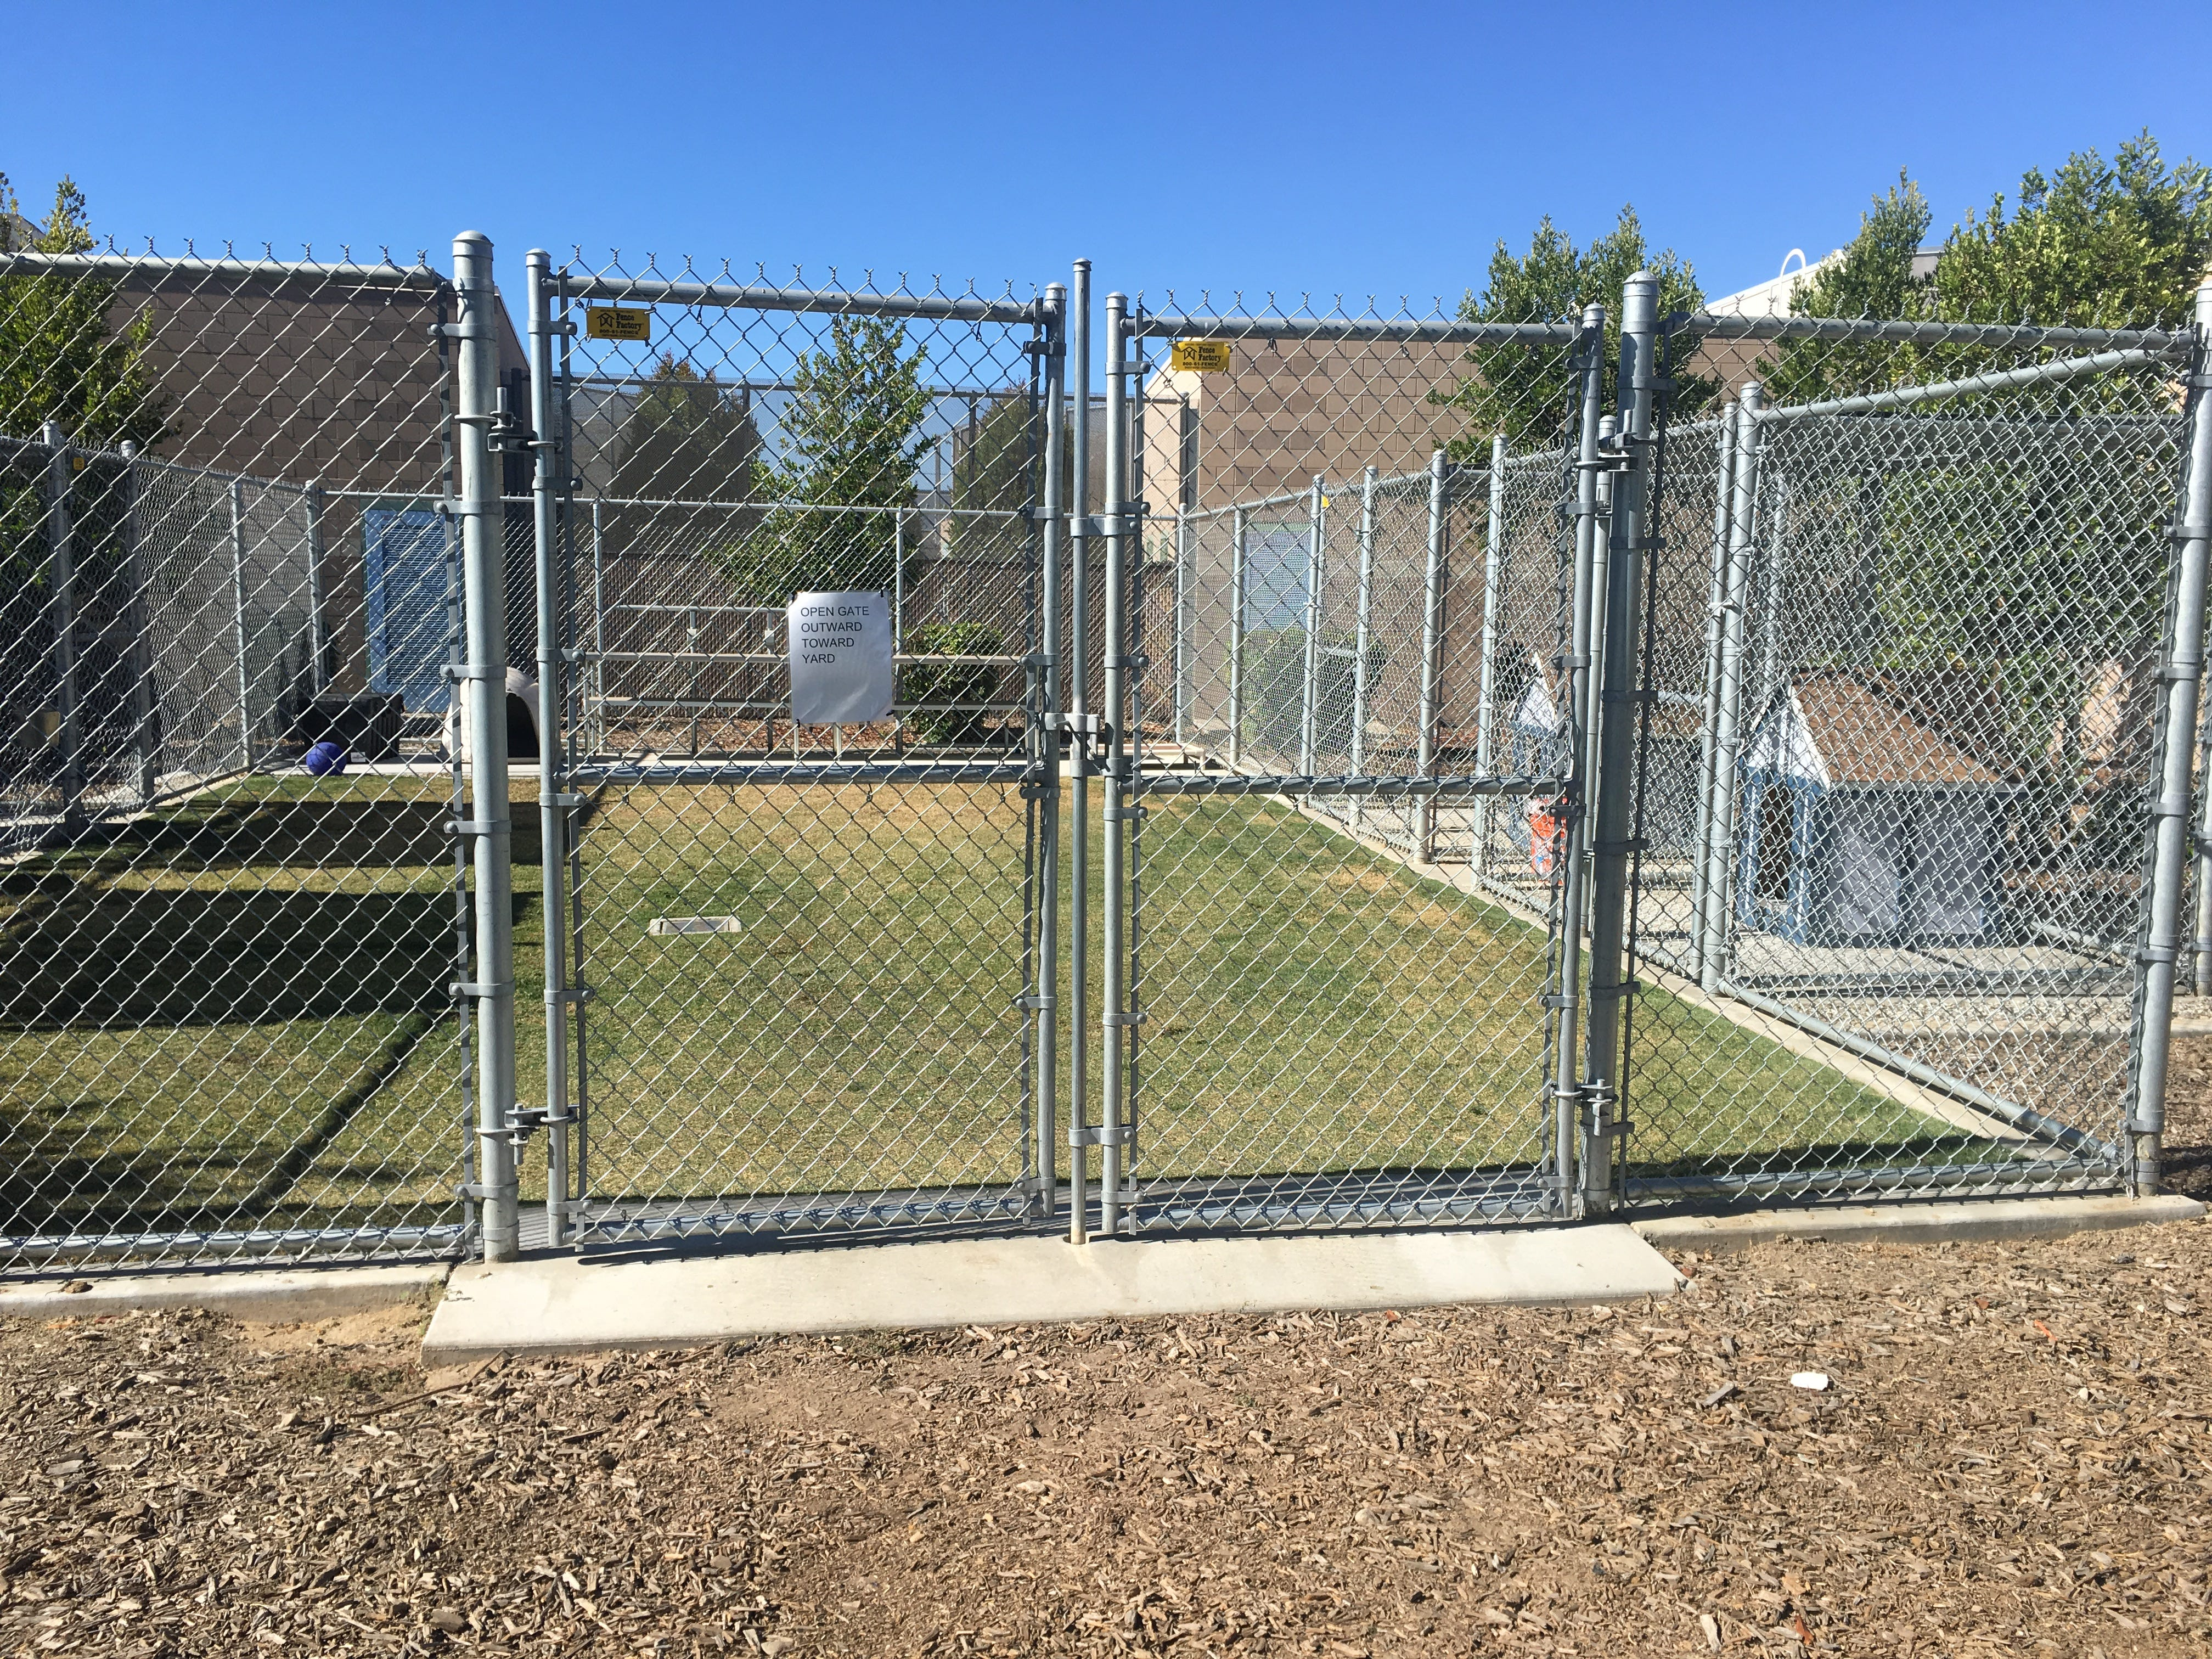 A dog training program began recently at the Ventura County Juvenile Hall facility in El Rio. In addition to several skill trades programs, the facility has received upgrades in recent years to make it less institutional.